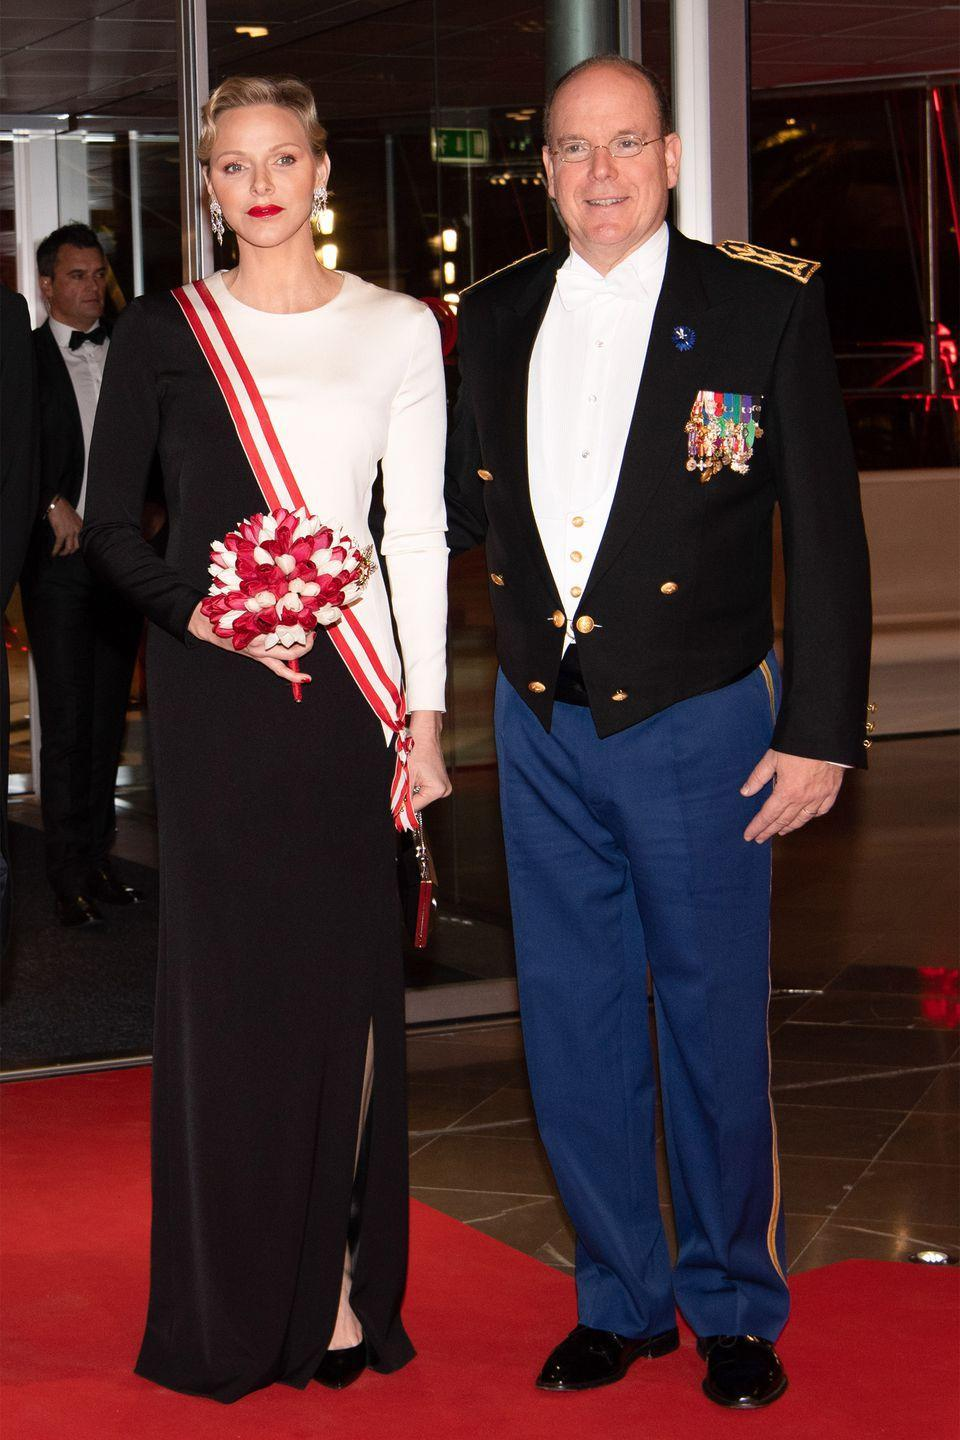 "<p>First meeting at a swimming competition in Monte Carlo in 2000, Princess Charlene of Monaco, then 22, and Prince Albert II of Monaco, then 42, dated for ten years before finally becoming engaged in 2011. The couple married that same year in a lavish royal wedding, where the bride stunned in a a <a href=""https://us.hellomagazine.com/royalty/gallery/2016070132199/princess-charlene-prince-albert-royal-wedding-anniversary/3/"" rel=""nofollow noopener"" target=""_blank"" data-ylk=""slk:Giorgio Armani gown"" class=""link rapid-noclick-resp"">Giorgio Armani gown</a>.</p>"